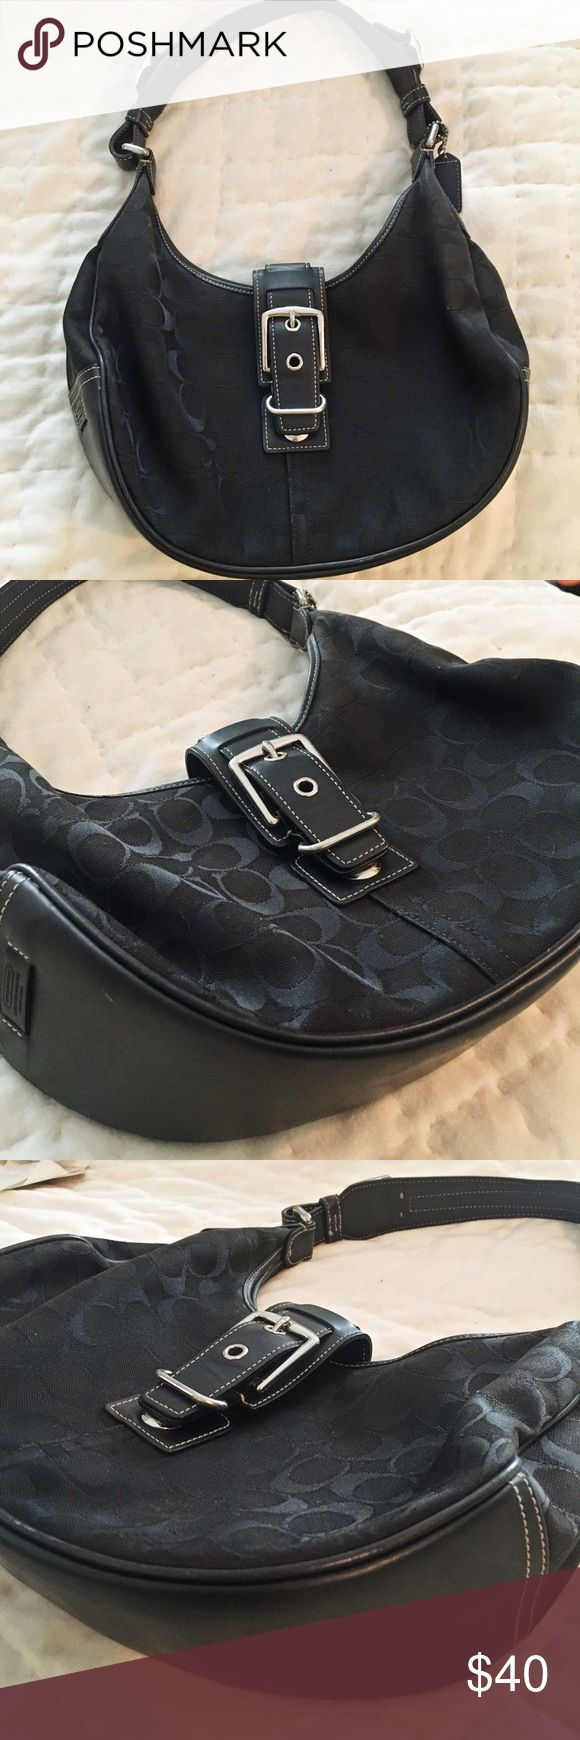 100% Authentic Classic Black Coach Hobo Bag This is the classic Coach staple logo fabric hobo bag. In almost perfect condition except for the corner stain on the back of the bag( as pictured). No rips or tears. Leather in excellent condition. Perfect interior. Lovingly used. Coach Bags Hobos